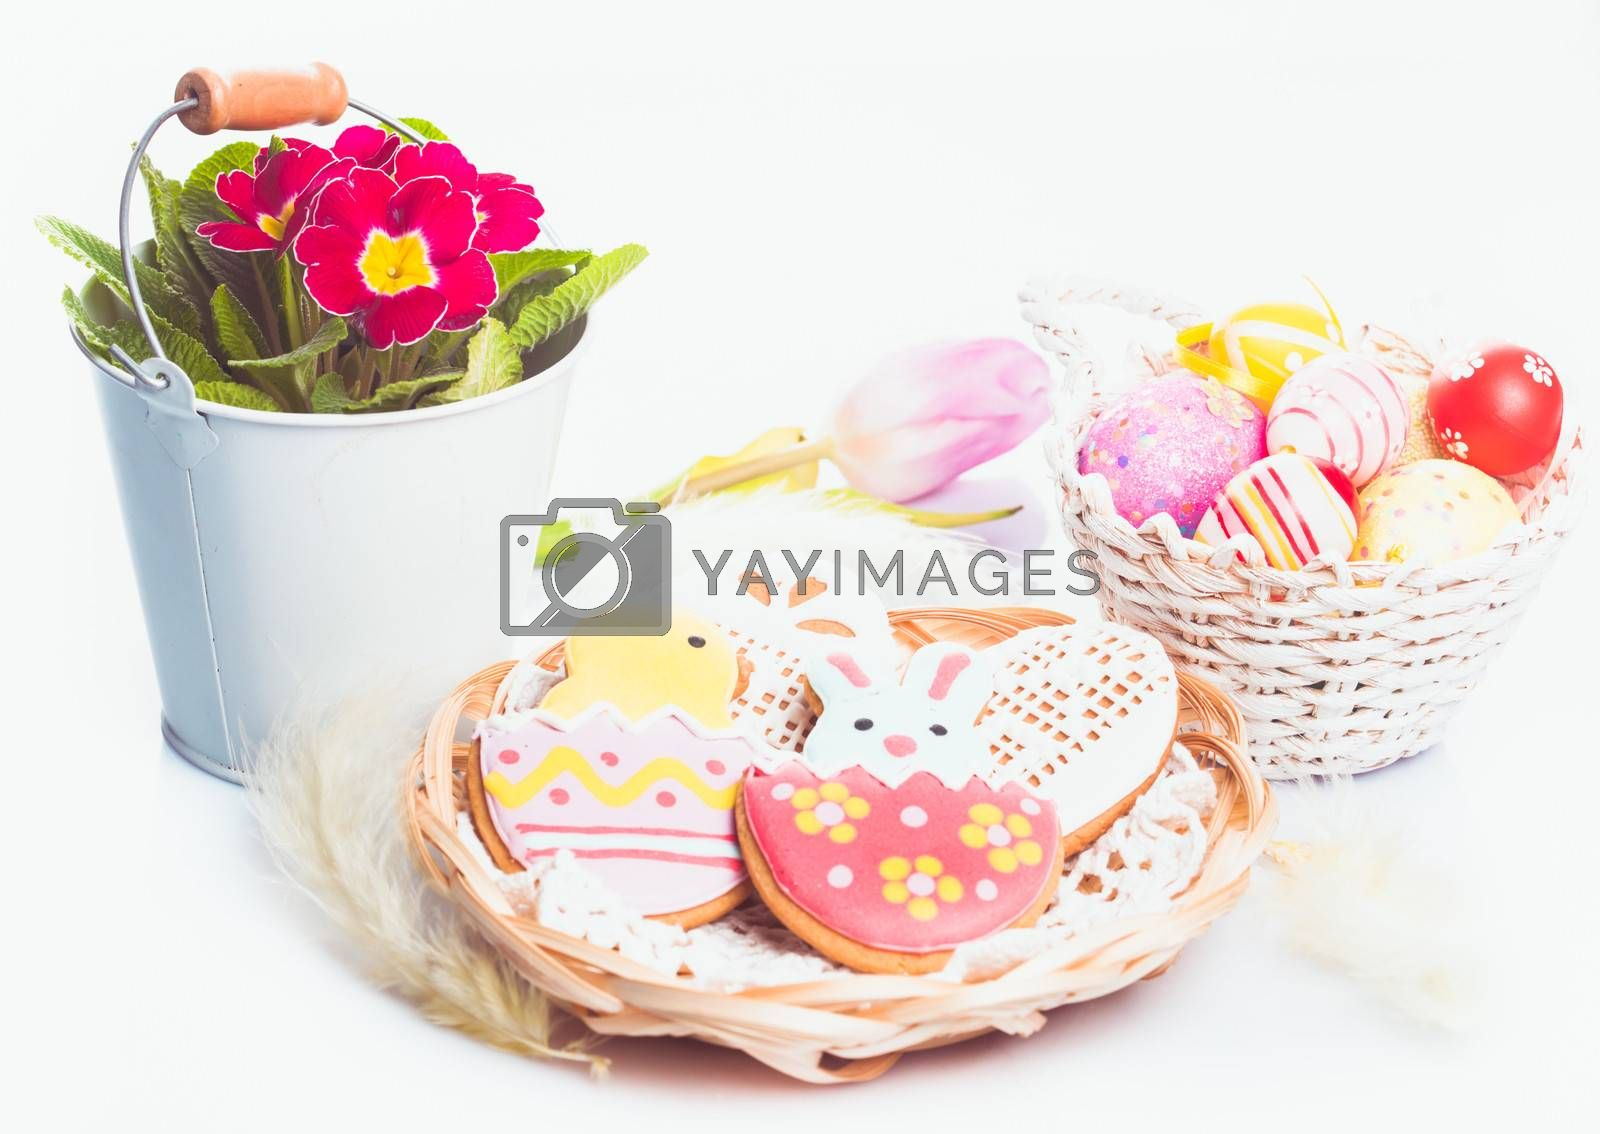 Easter cookies and decorative eggs. Easter decor